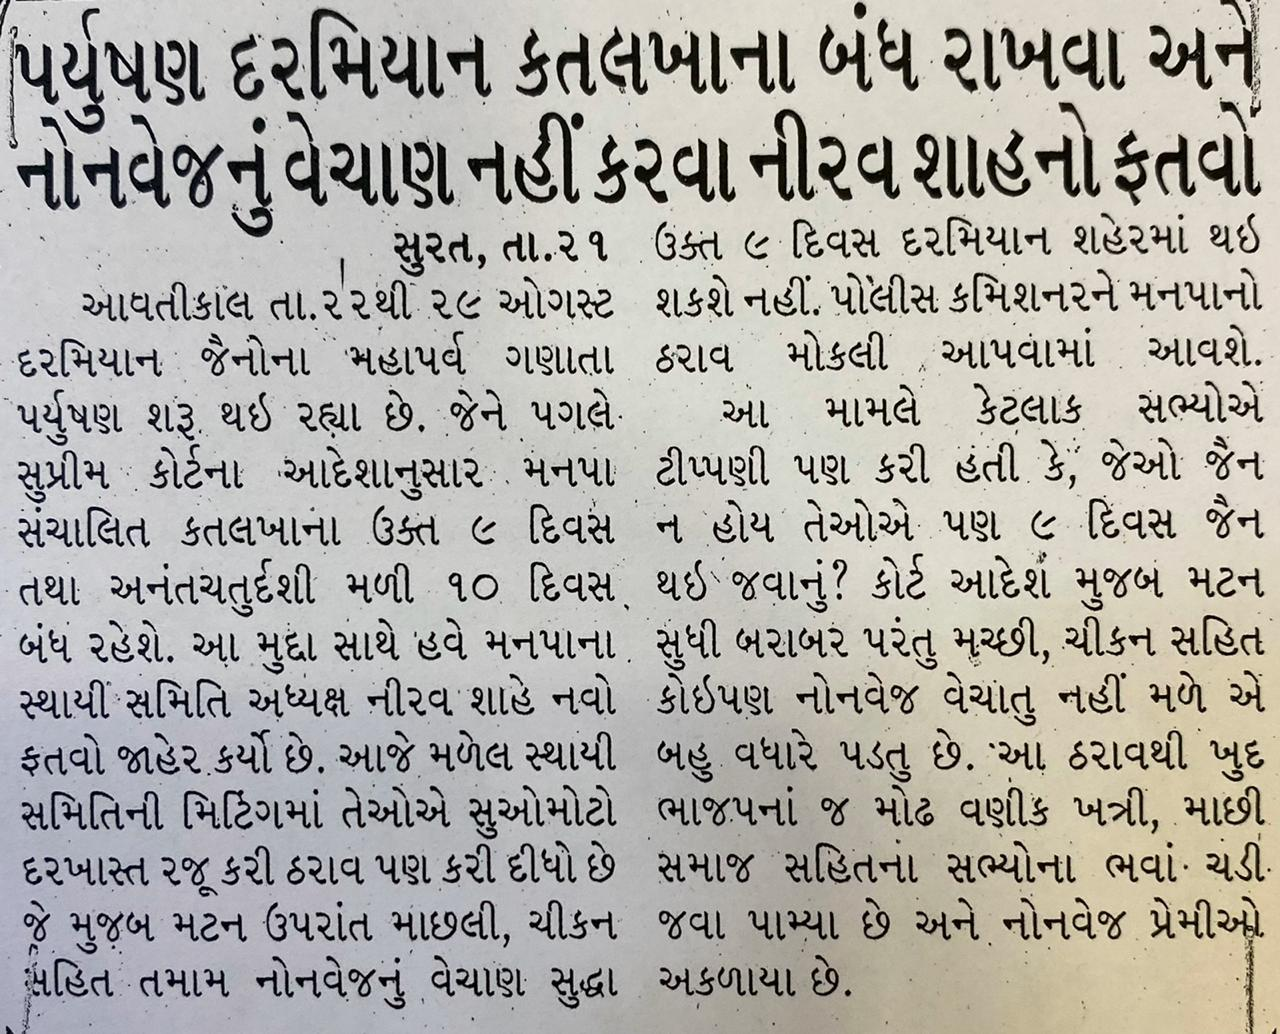 On the ocassion of jain paryushan Nirav Shah requested closing of slaughterhouse and sale of non veg